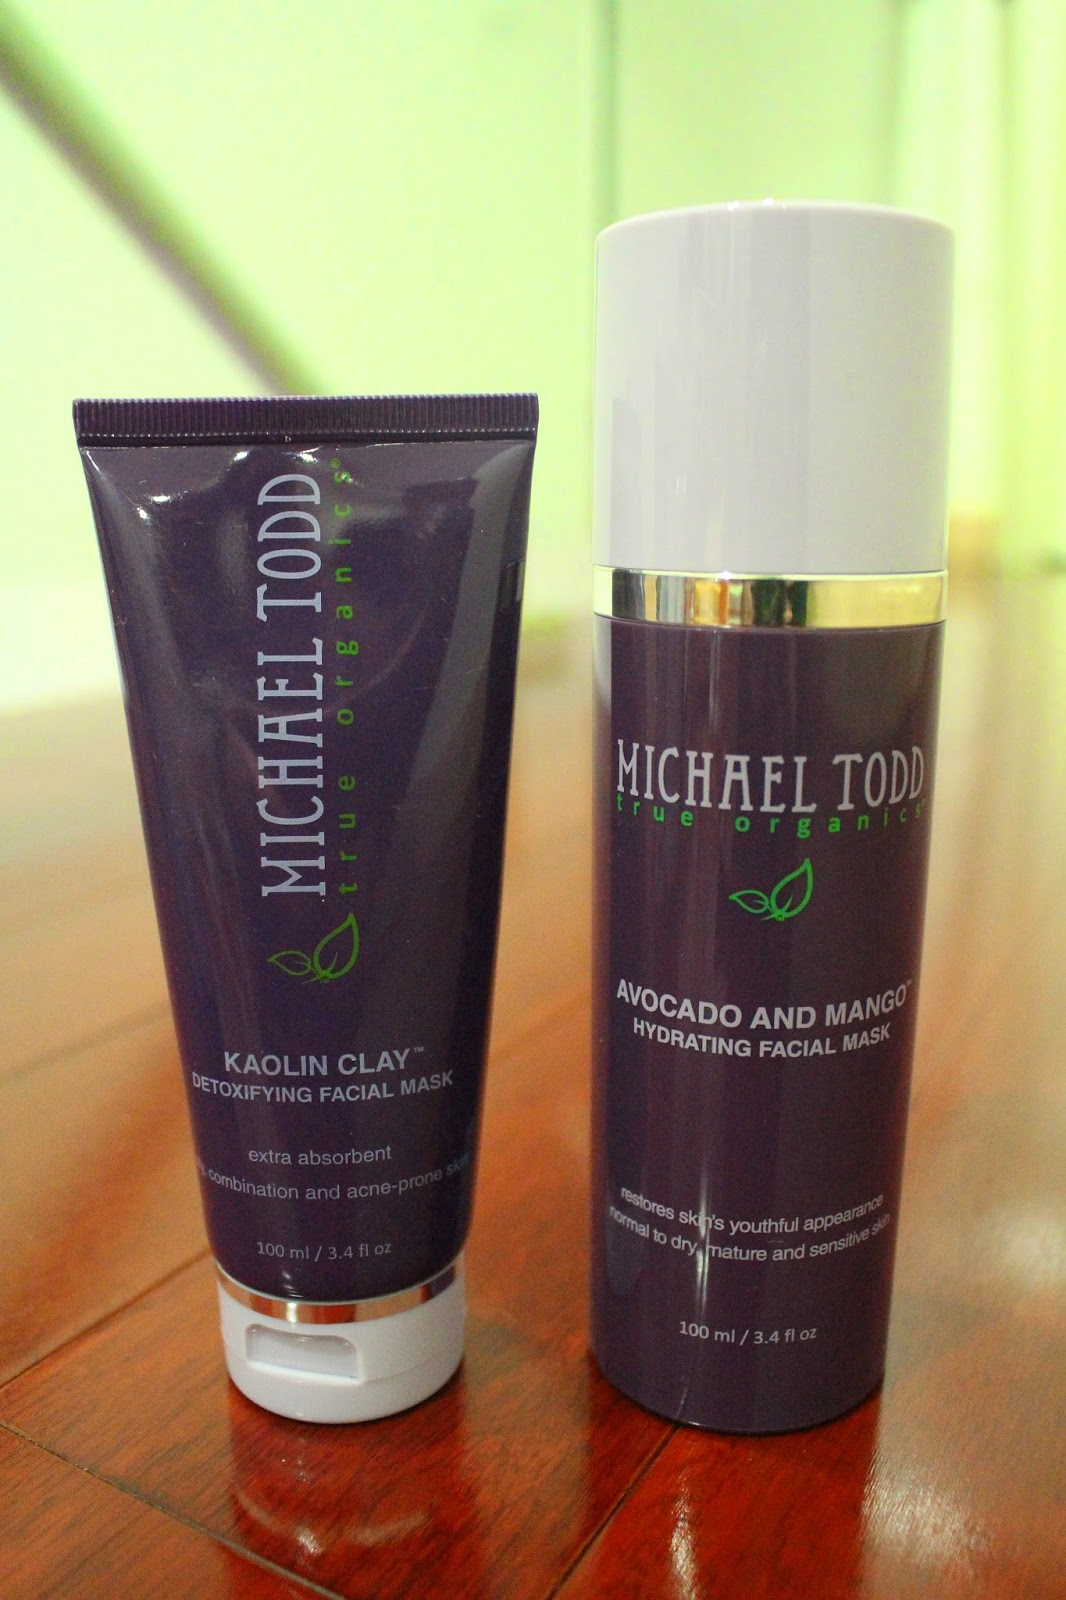 Michael Todd Kaolin Clay Detoxifying Facial Mask and Avocado and Mango Hydrating Facial Mask